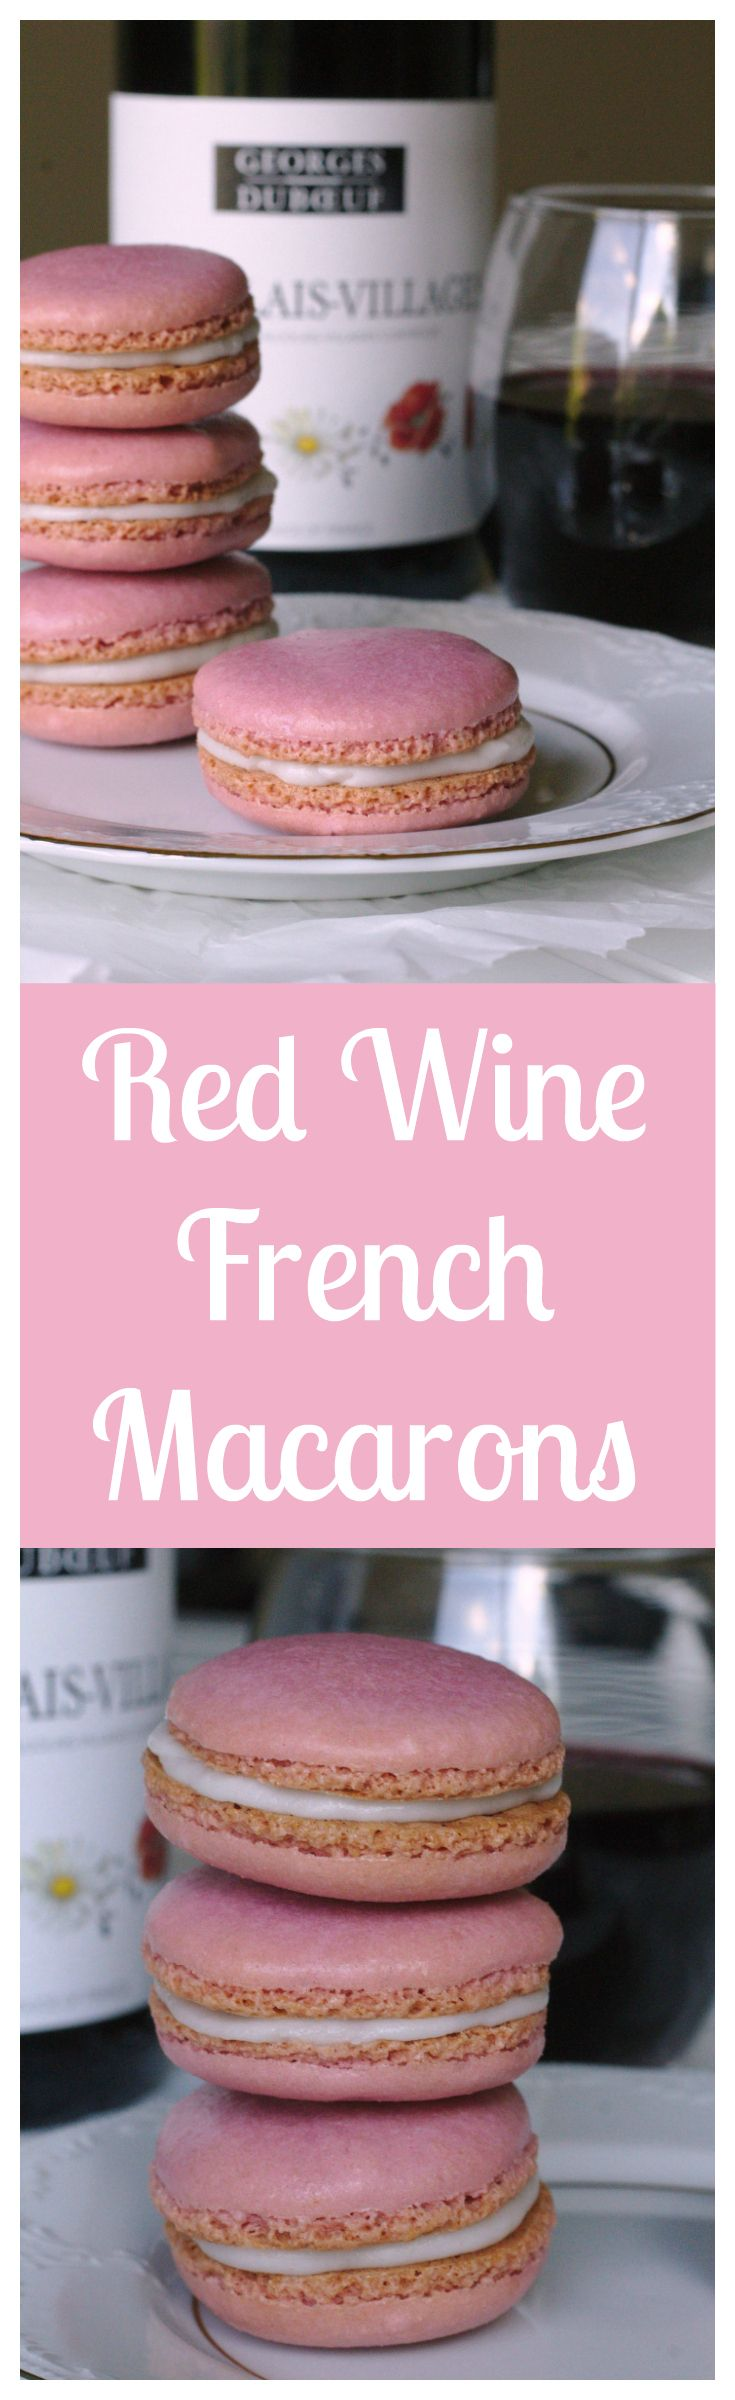 Red Wine French Macarons – Homemade macarons made with a splash of red wine and filled with a red wine buttercream. Basically the greatest dessert ever!